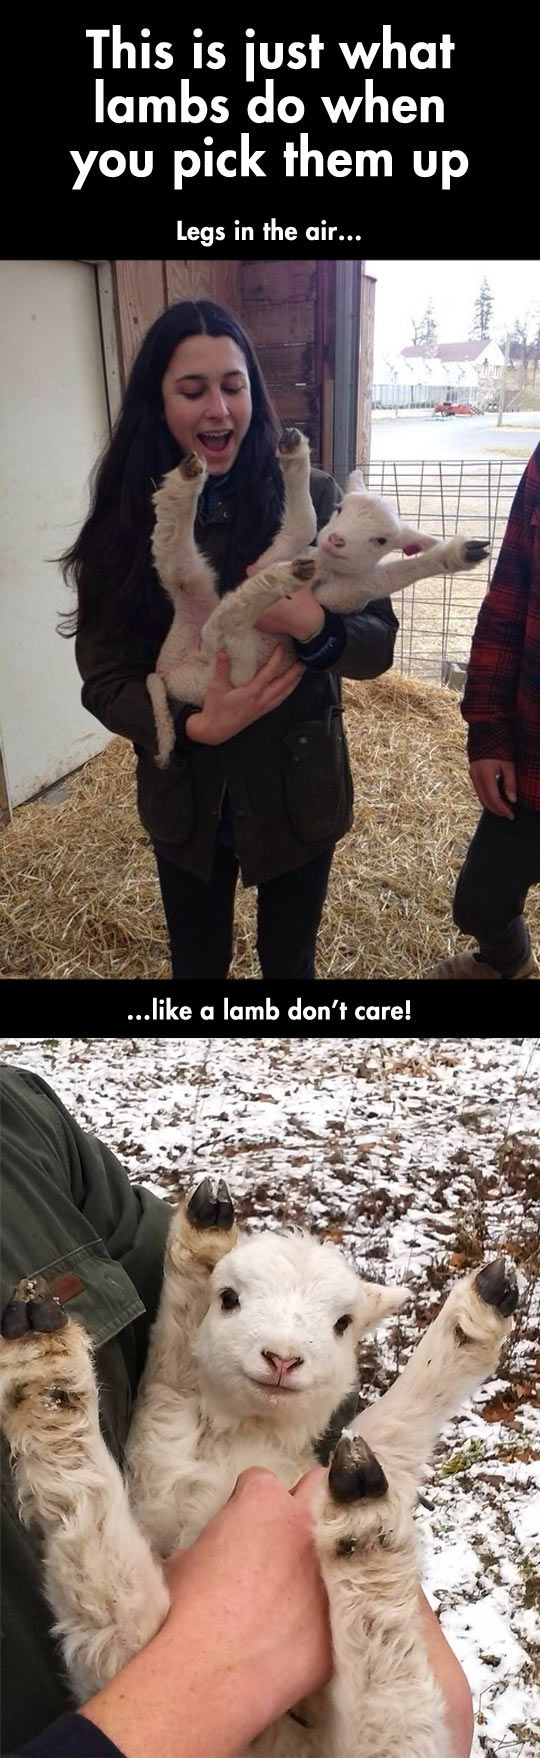 When you pick up a lamb.